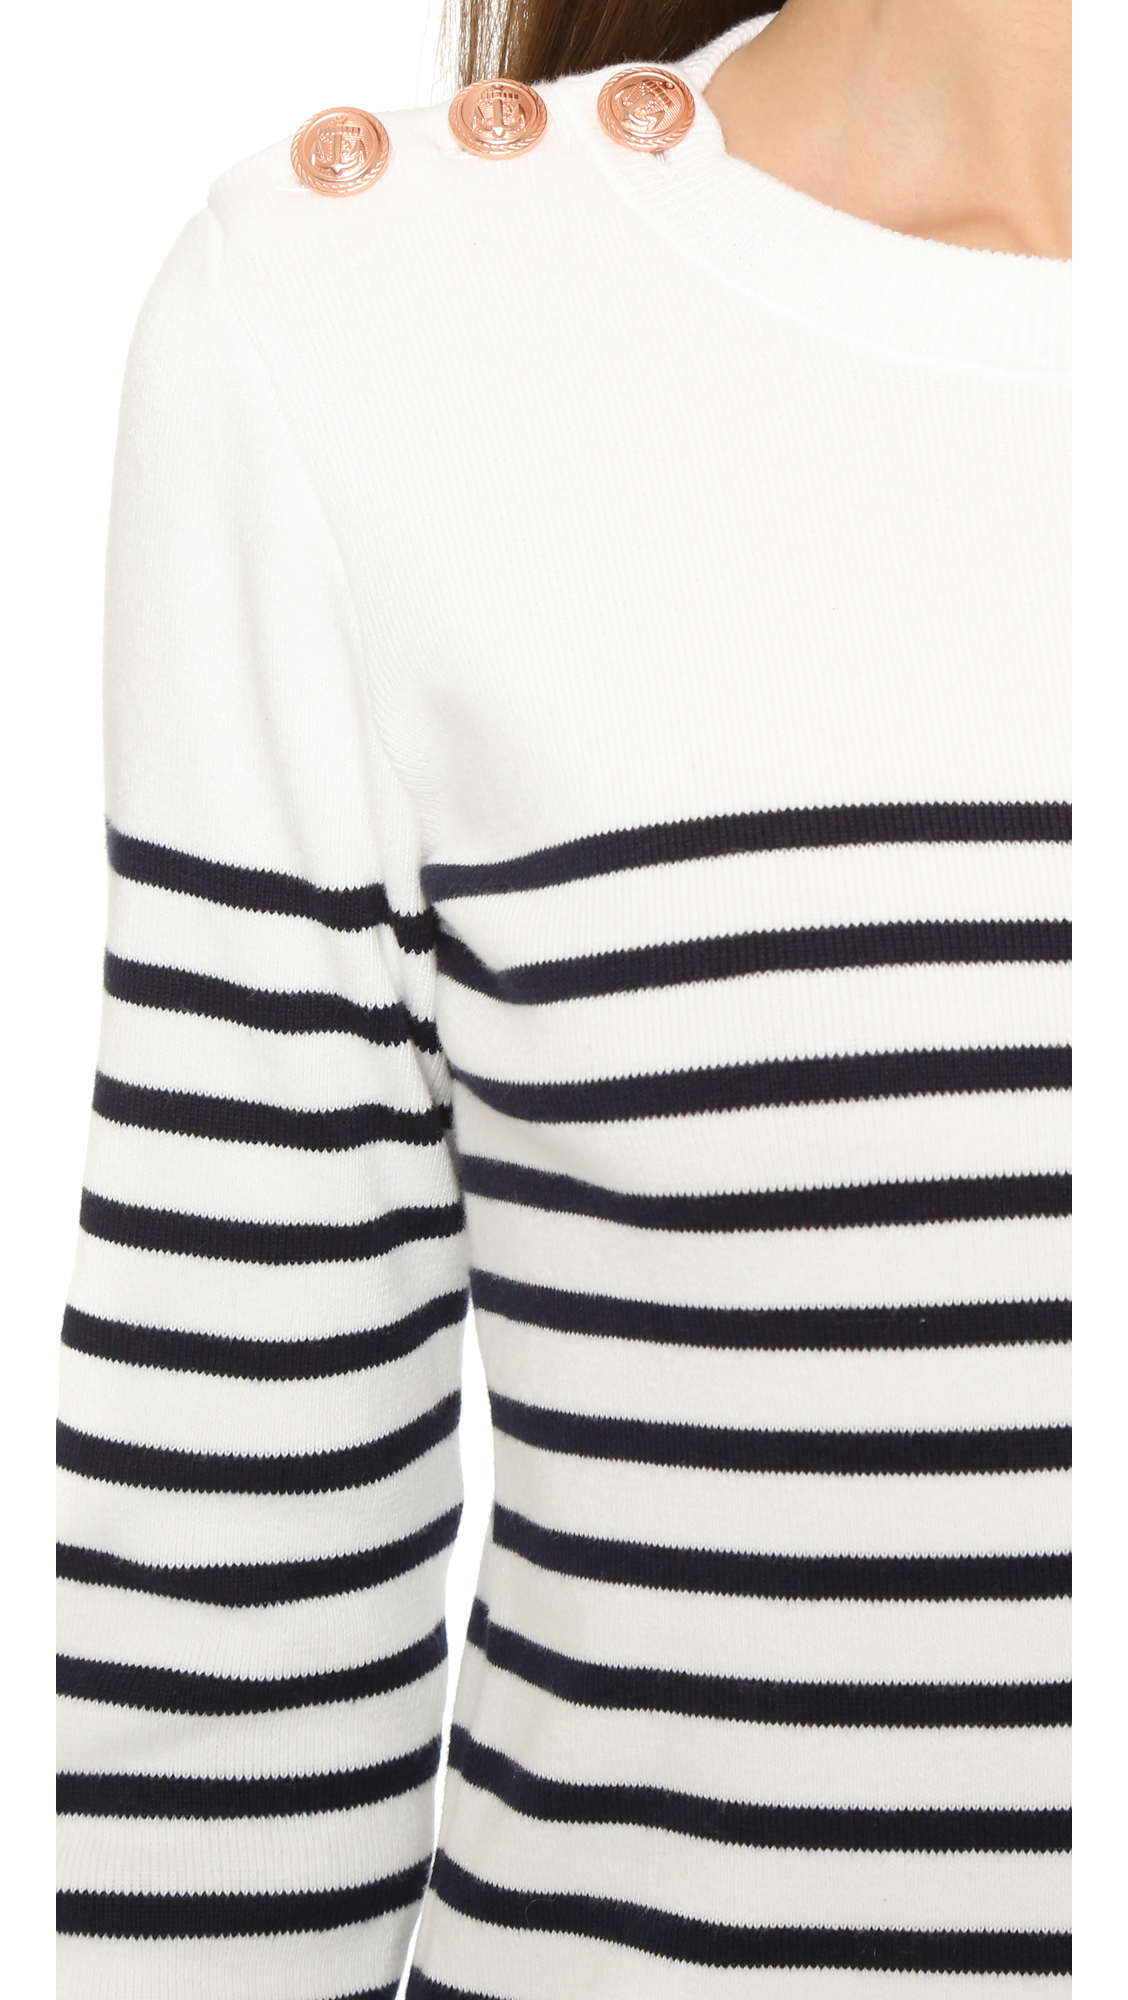 4517a2aaded1c Lyst - Petit Bateau Knit Striped Sweater in White